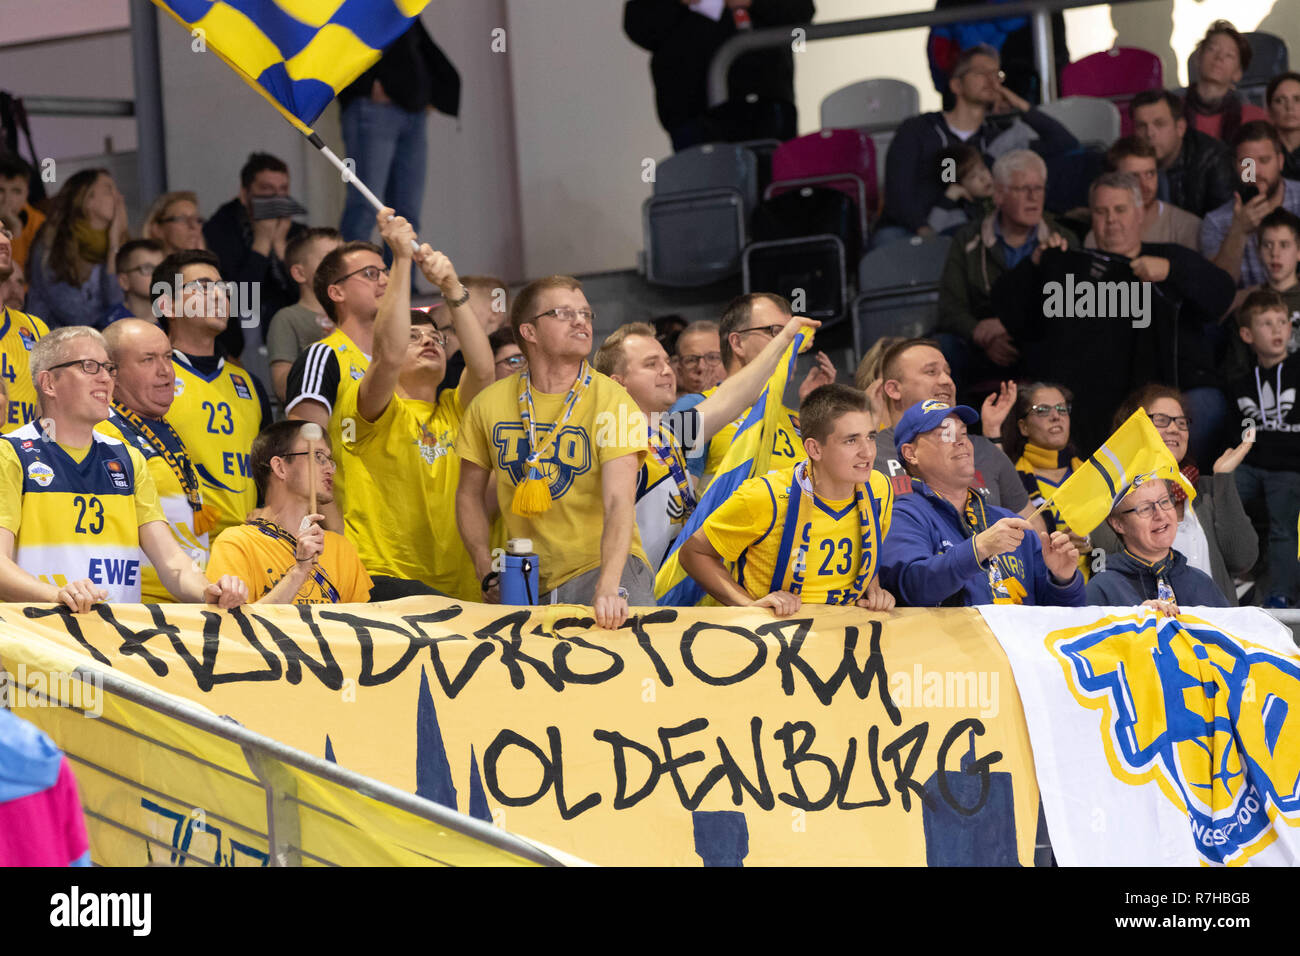 Bonn, Germany. 10th December 2018. Basketball, BBL, Telekom Baskets Bonn vs EWE Baskets Oldenburg: Fans (Oldenburg). Credit: Juergen Schwarz/Alamy Live News - Stock Image